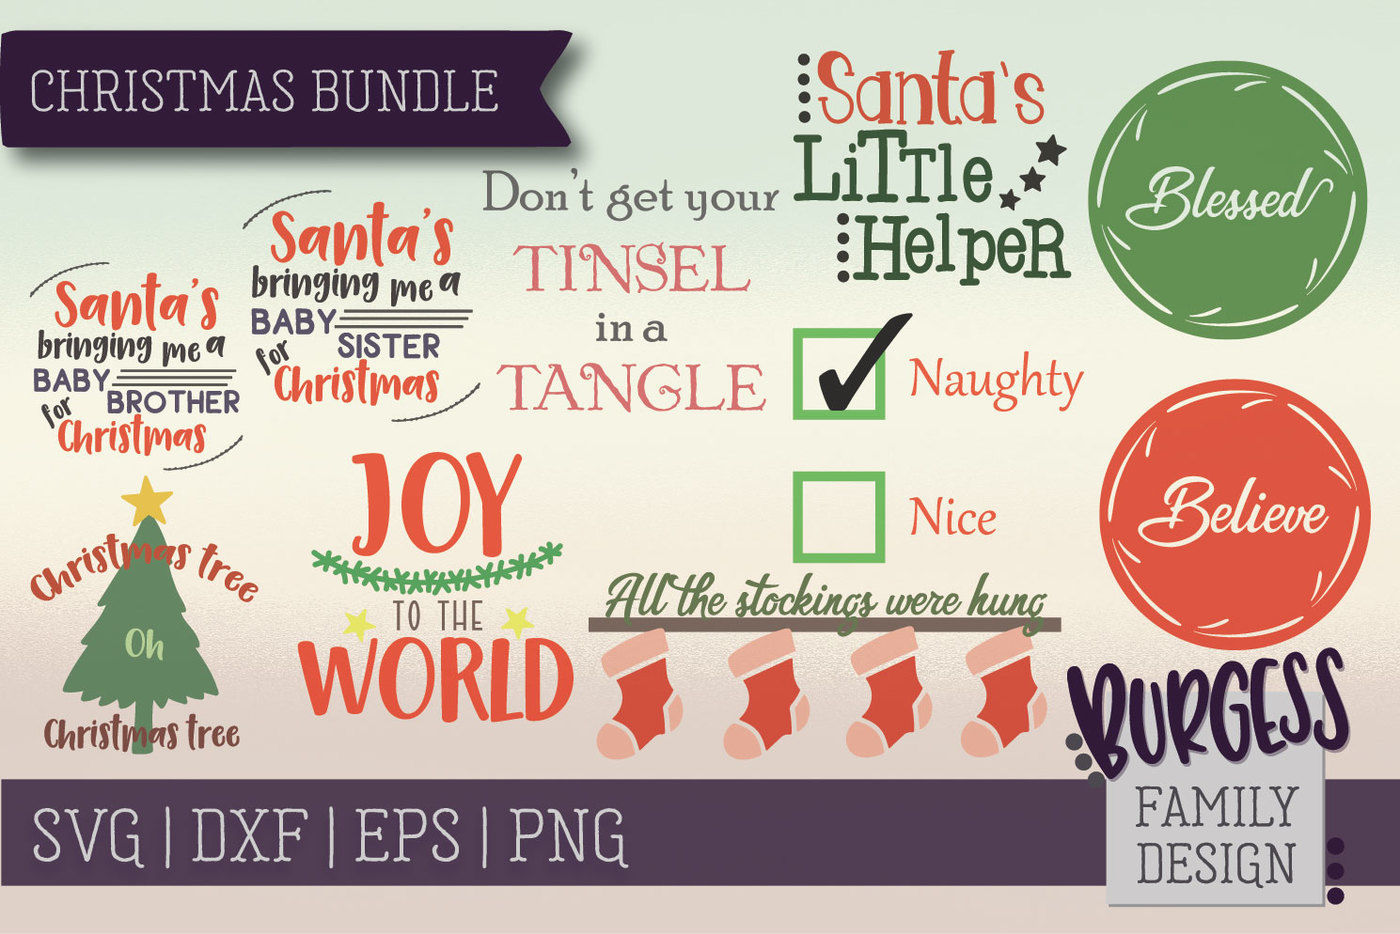 The Starter Bundle Over 200 Designs Svg Dxf Eps Png By Burgess